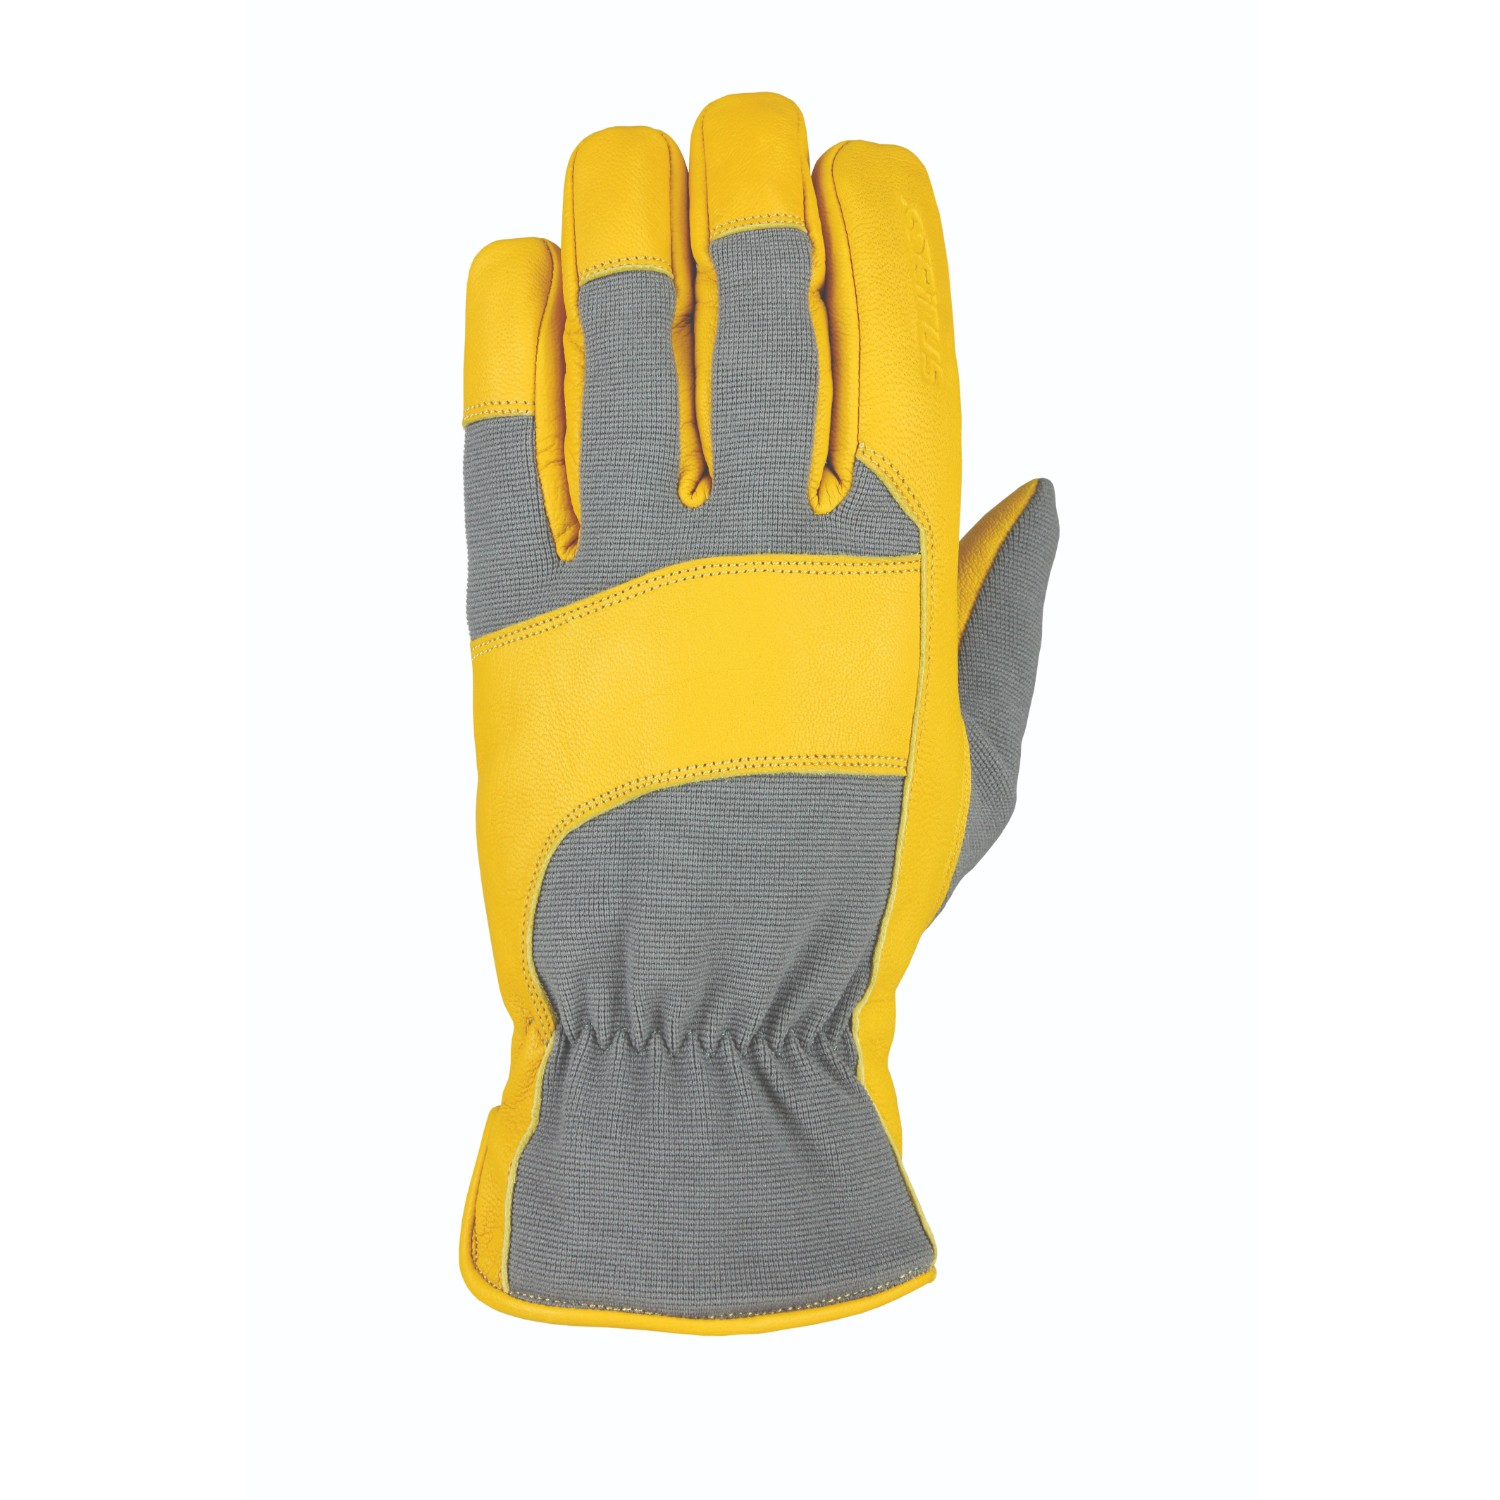 Heatwave Leather Glove Gray Tan Goatskin L